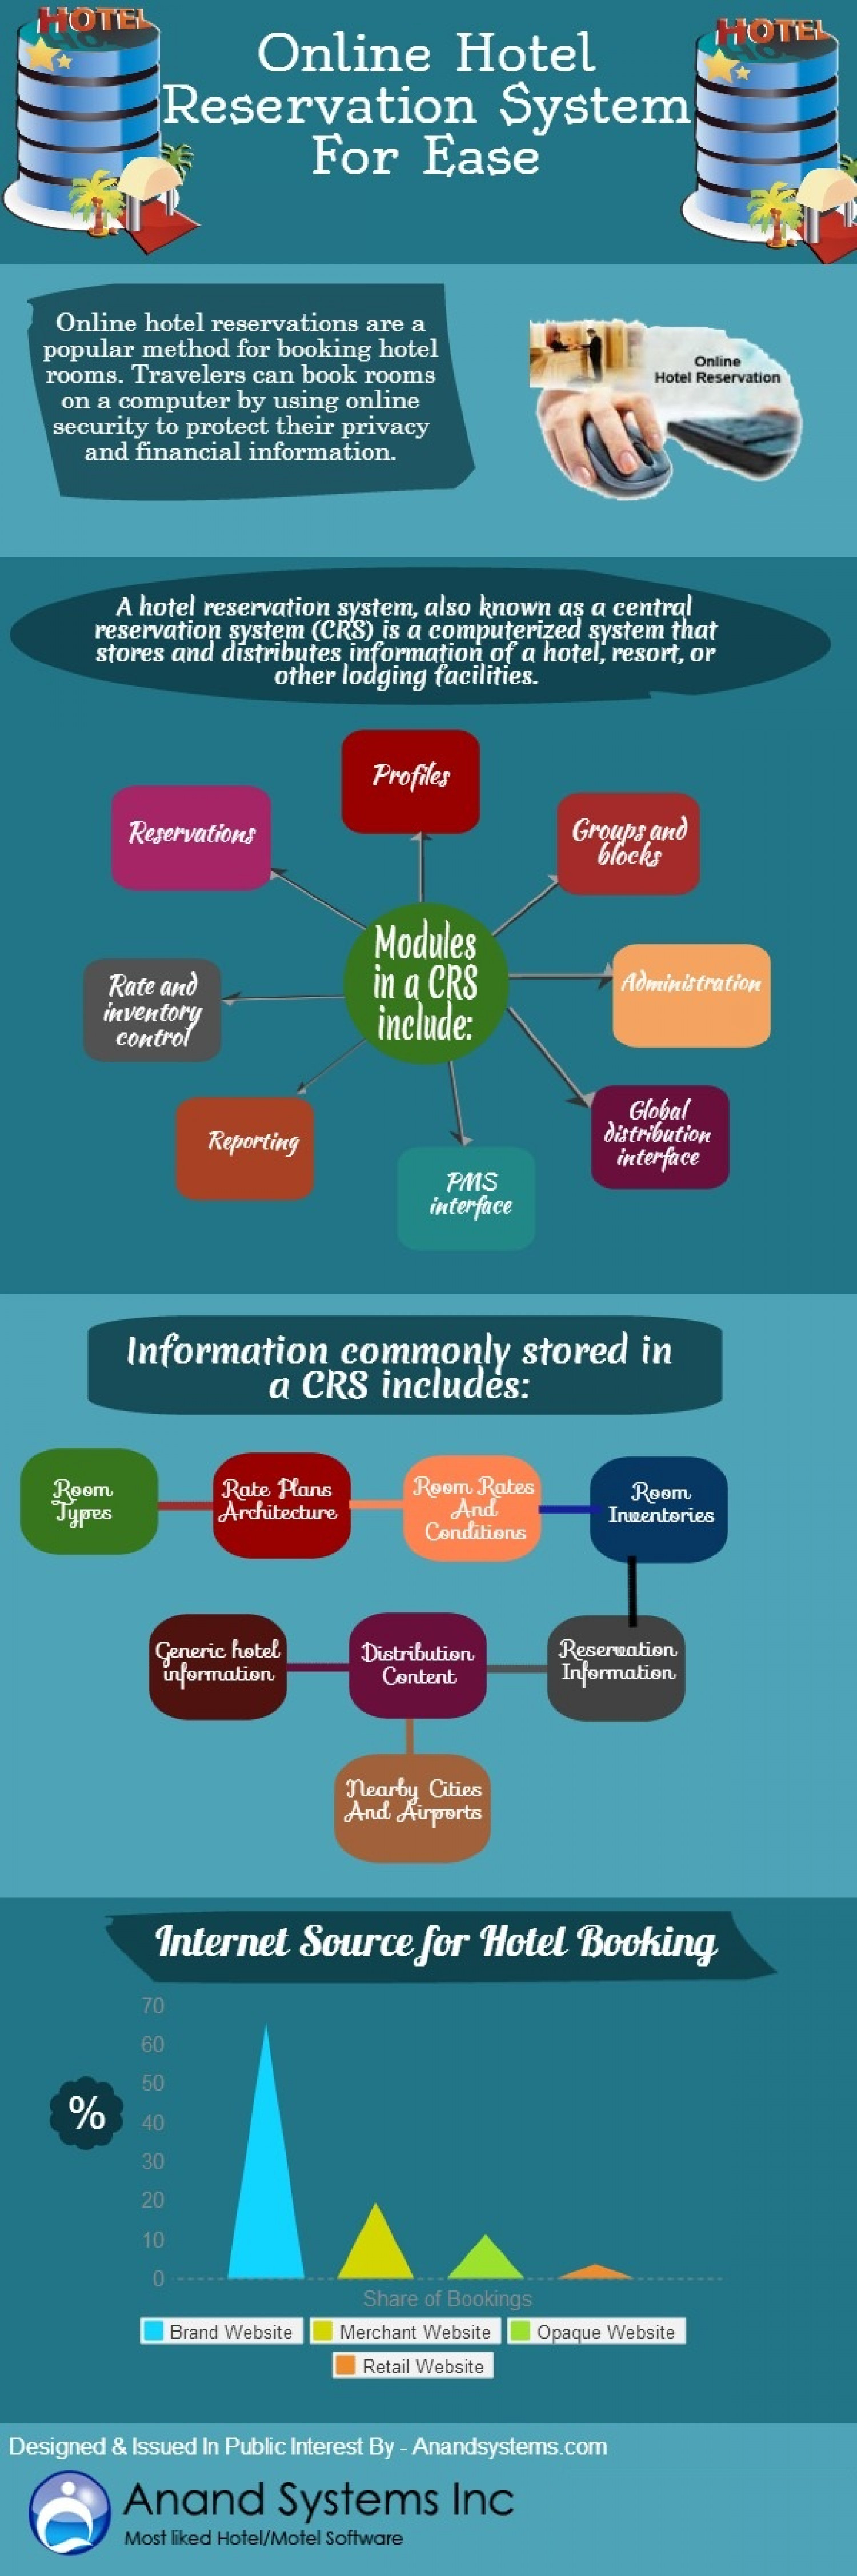 Online Hotel Reservation System For Ease Infographic